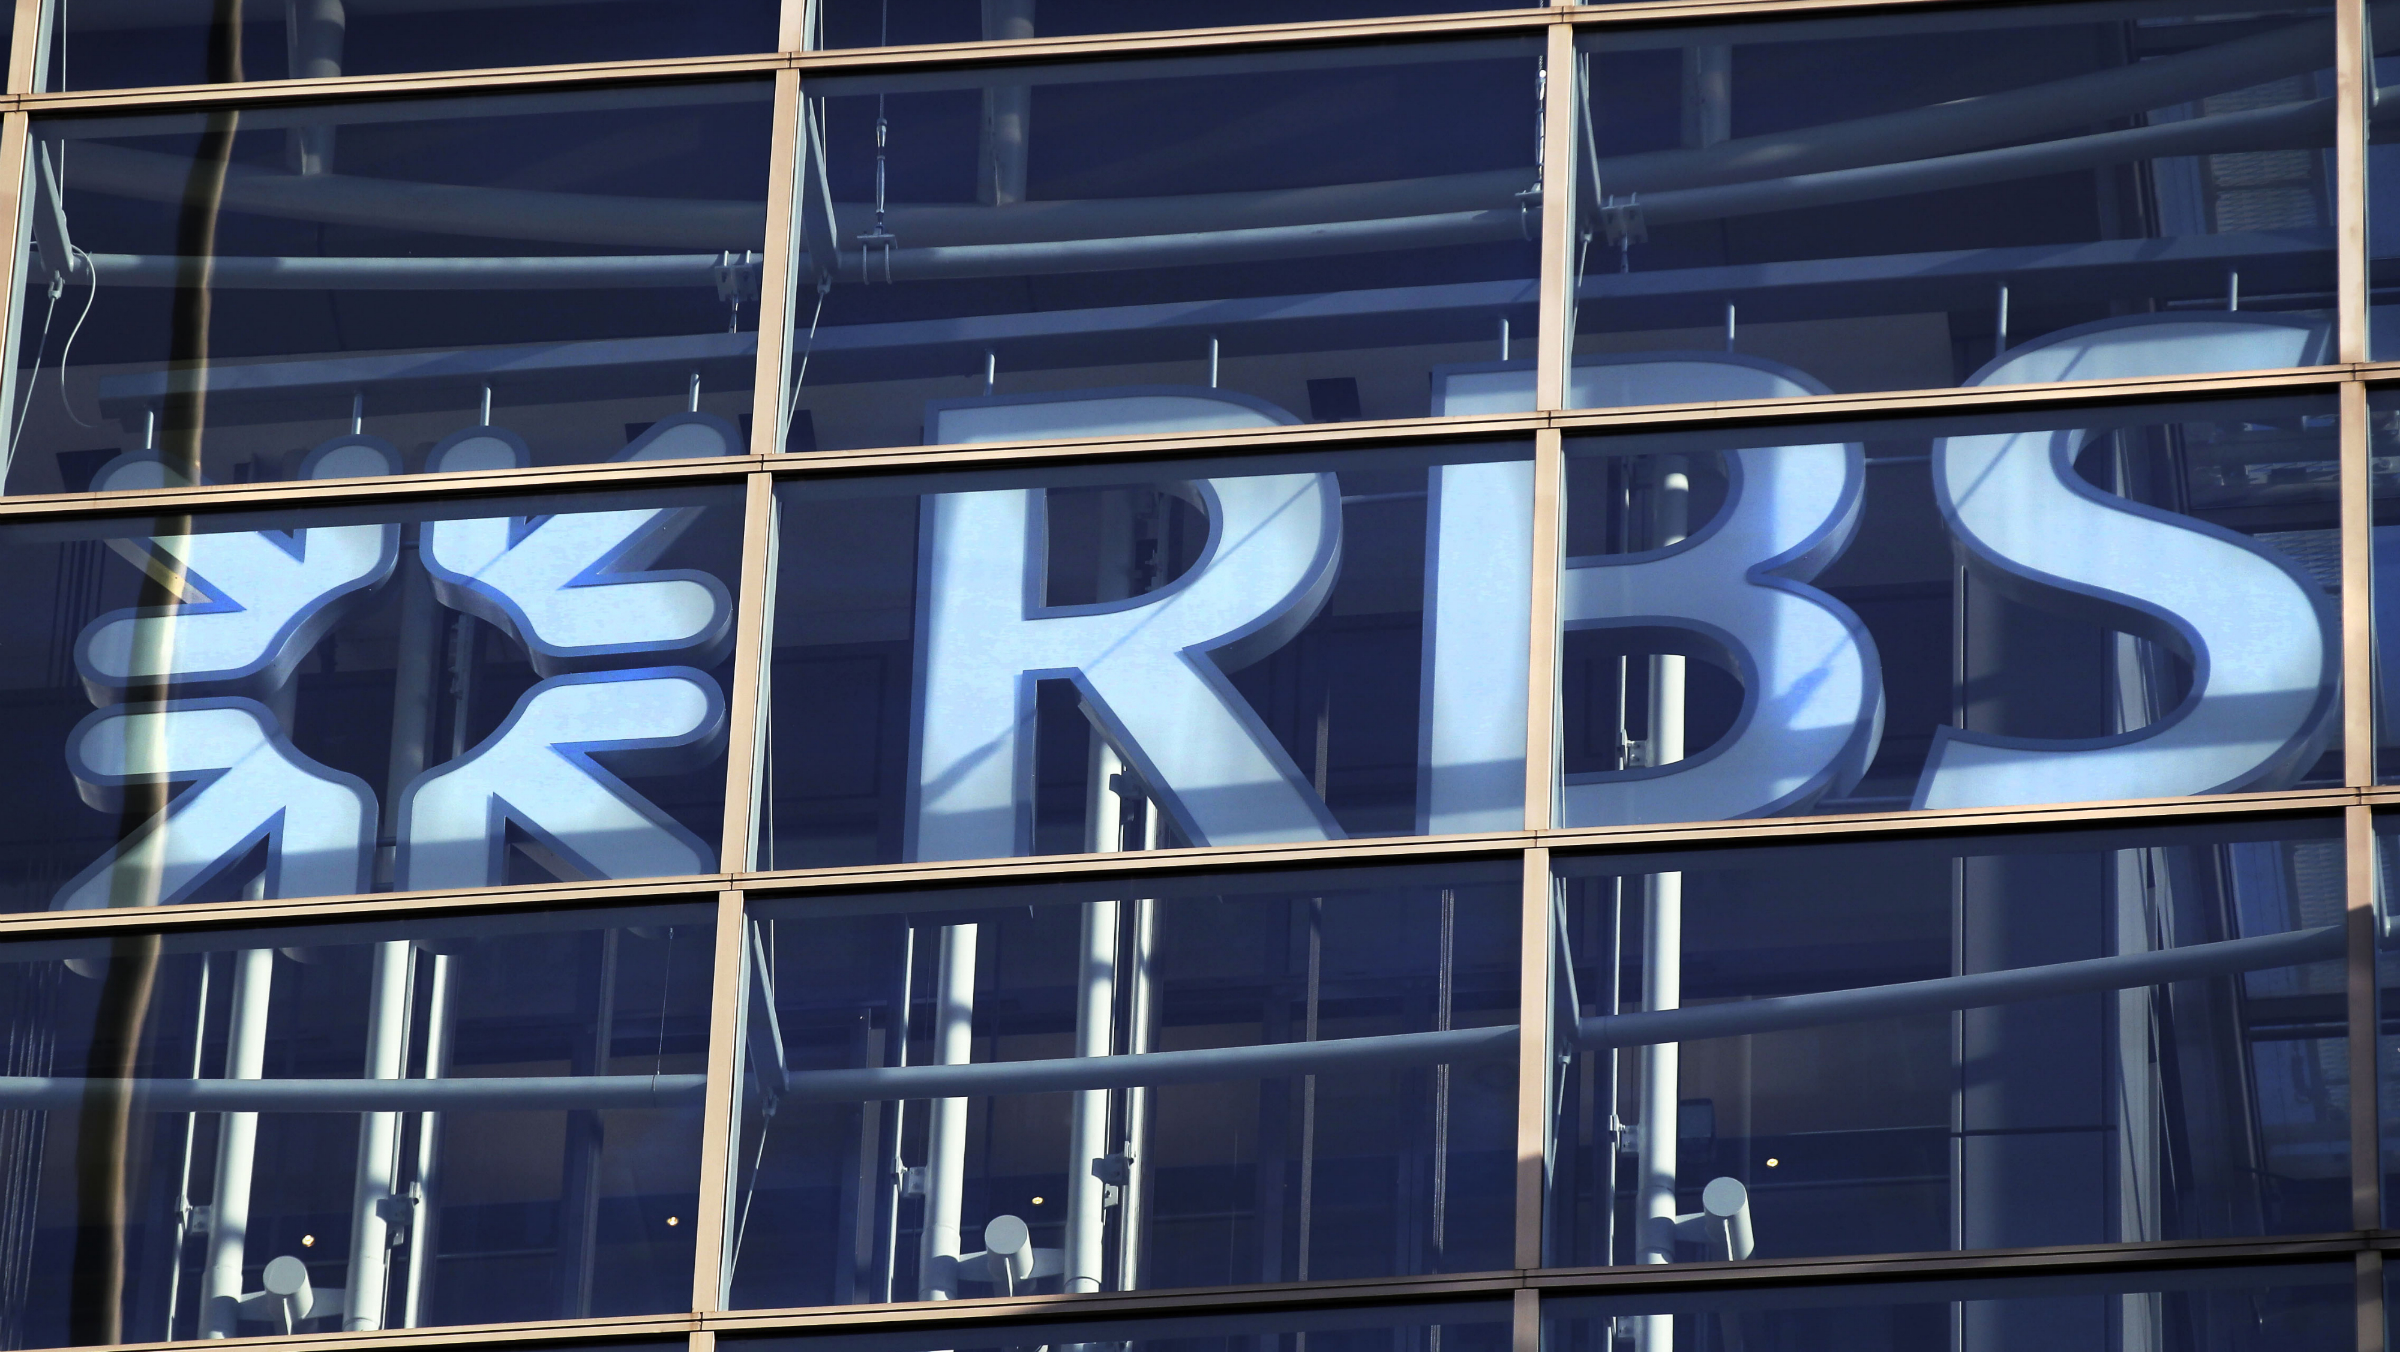 A sign of RBS, RoyalBankofScotland, is seen at its office in the City of London, Friday, Jan. 27, 2012. RBS bank's board of directors have awarded the bank's CEO Stephen Hester 3.6 million shares for his work over the last year, worth about 963,000 pounds ($1.5 million) based on Thursday's closing share price, although 82 percent of the bank is owned by the British government after recent financial bailouts. (AP Photo/Sang Tan)